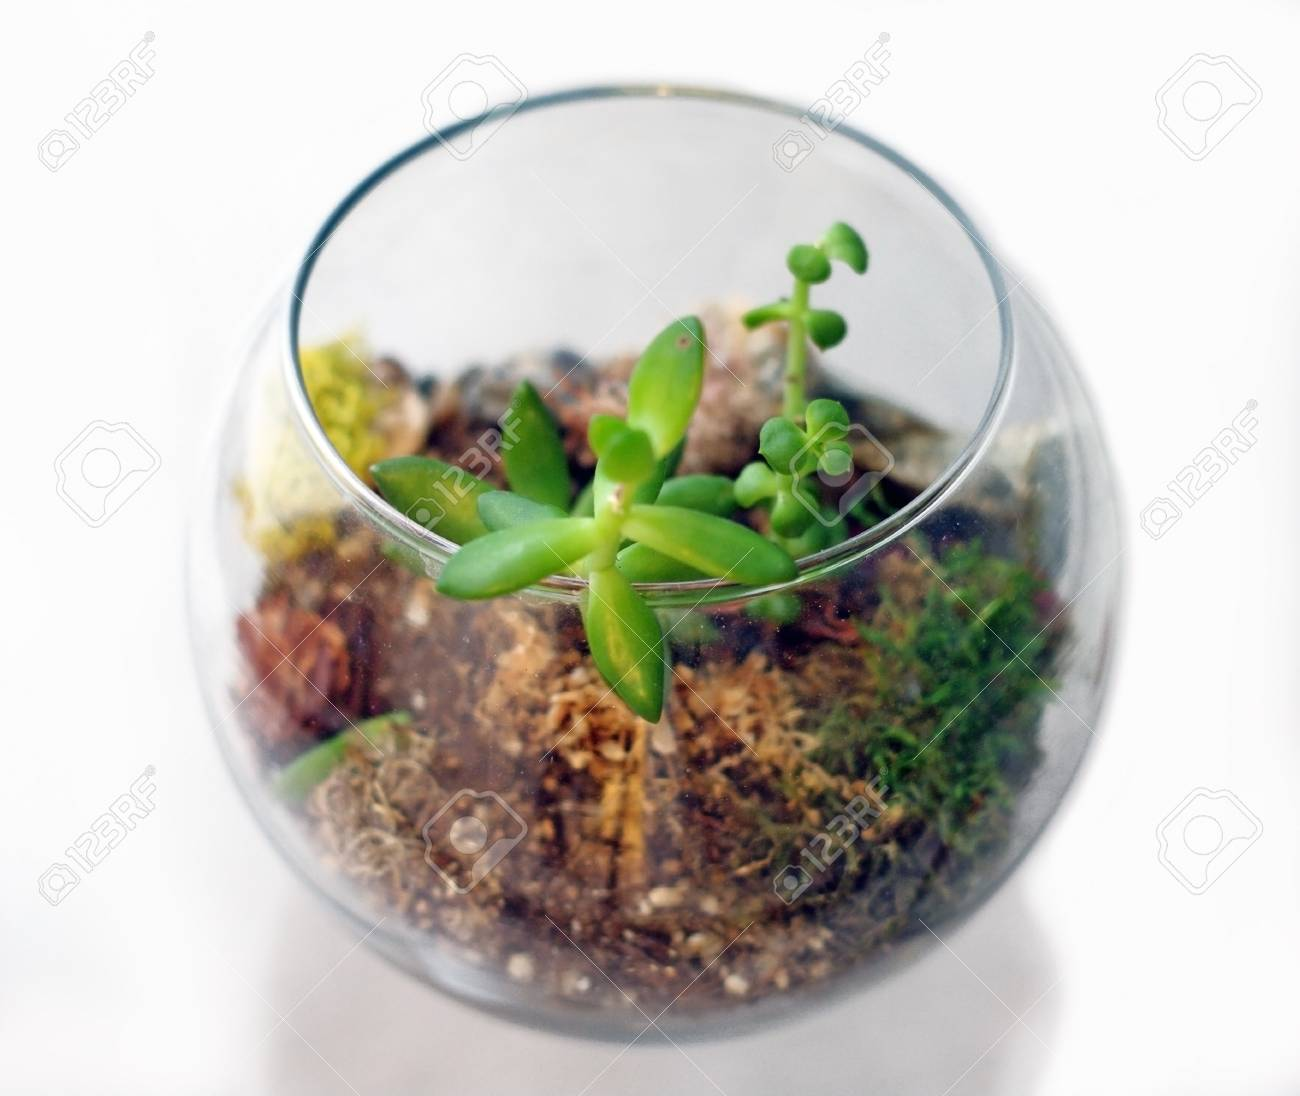 Small Terrarium Isolated Against White Background From Above Stock